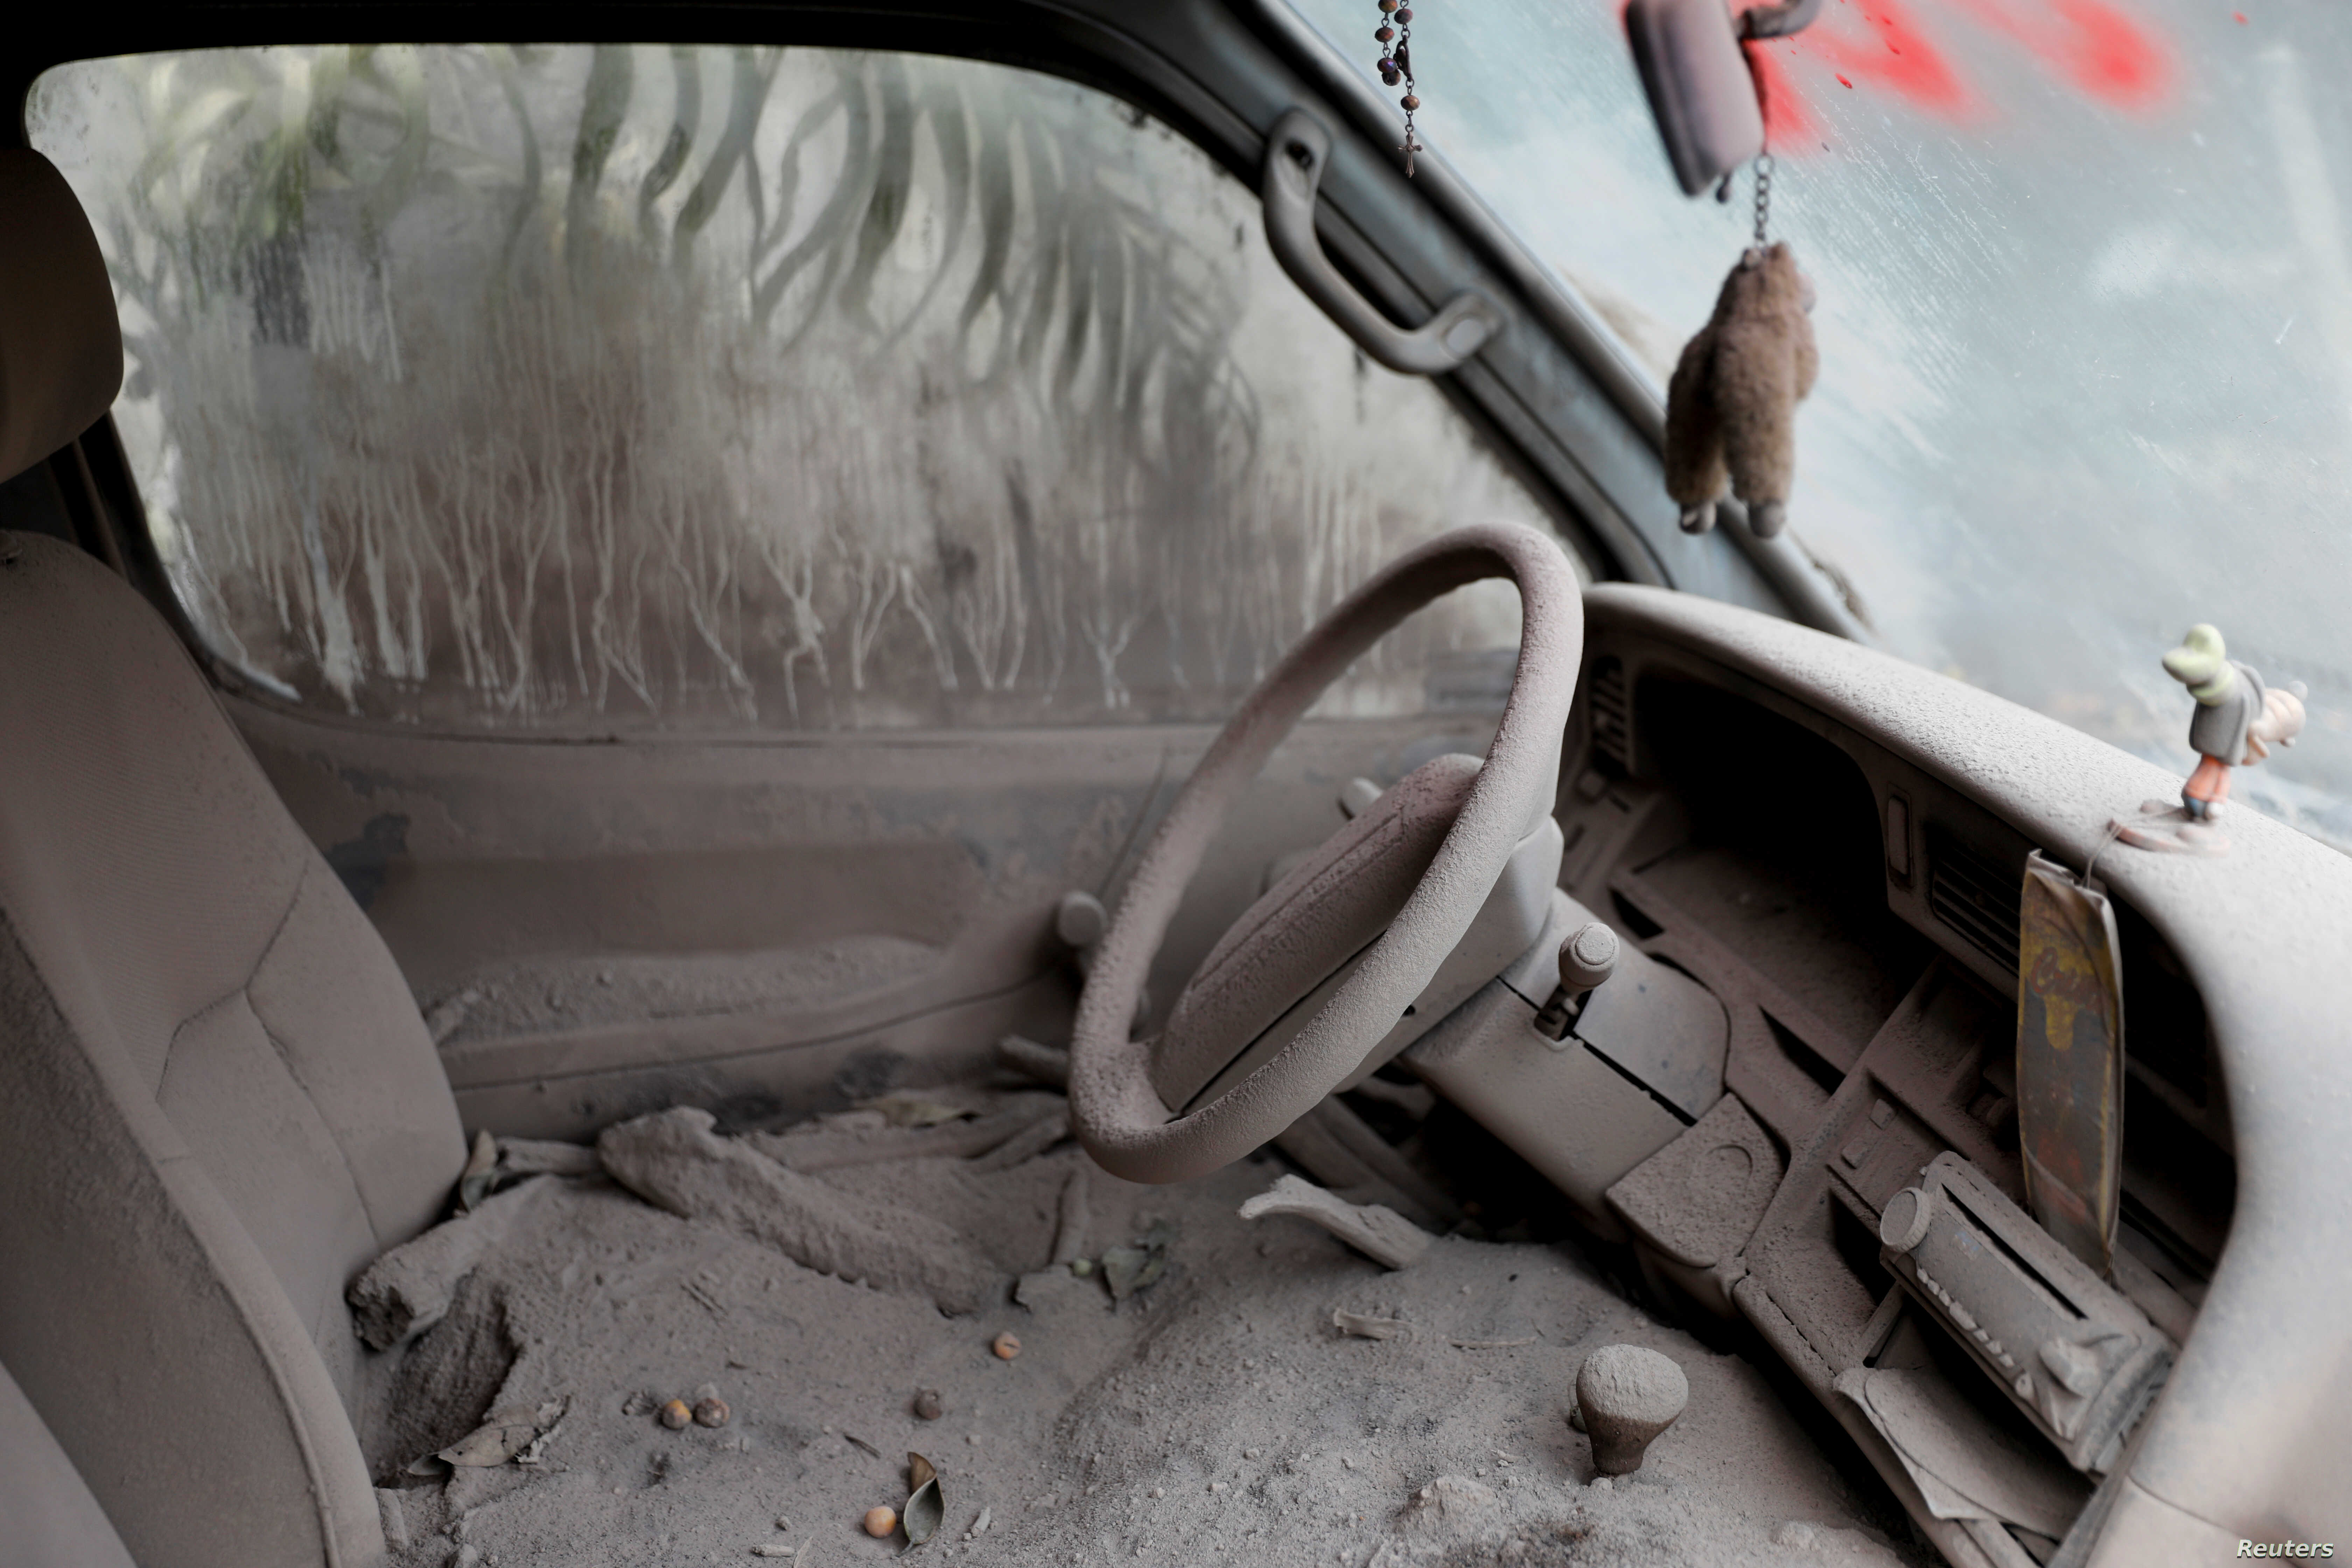 A car is seen covered in ash after the eruption of the Fuego volcano at San Miguel Los Lotes in Escuintla, Guatemala, June 10, 2018.